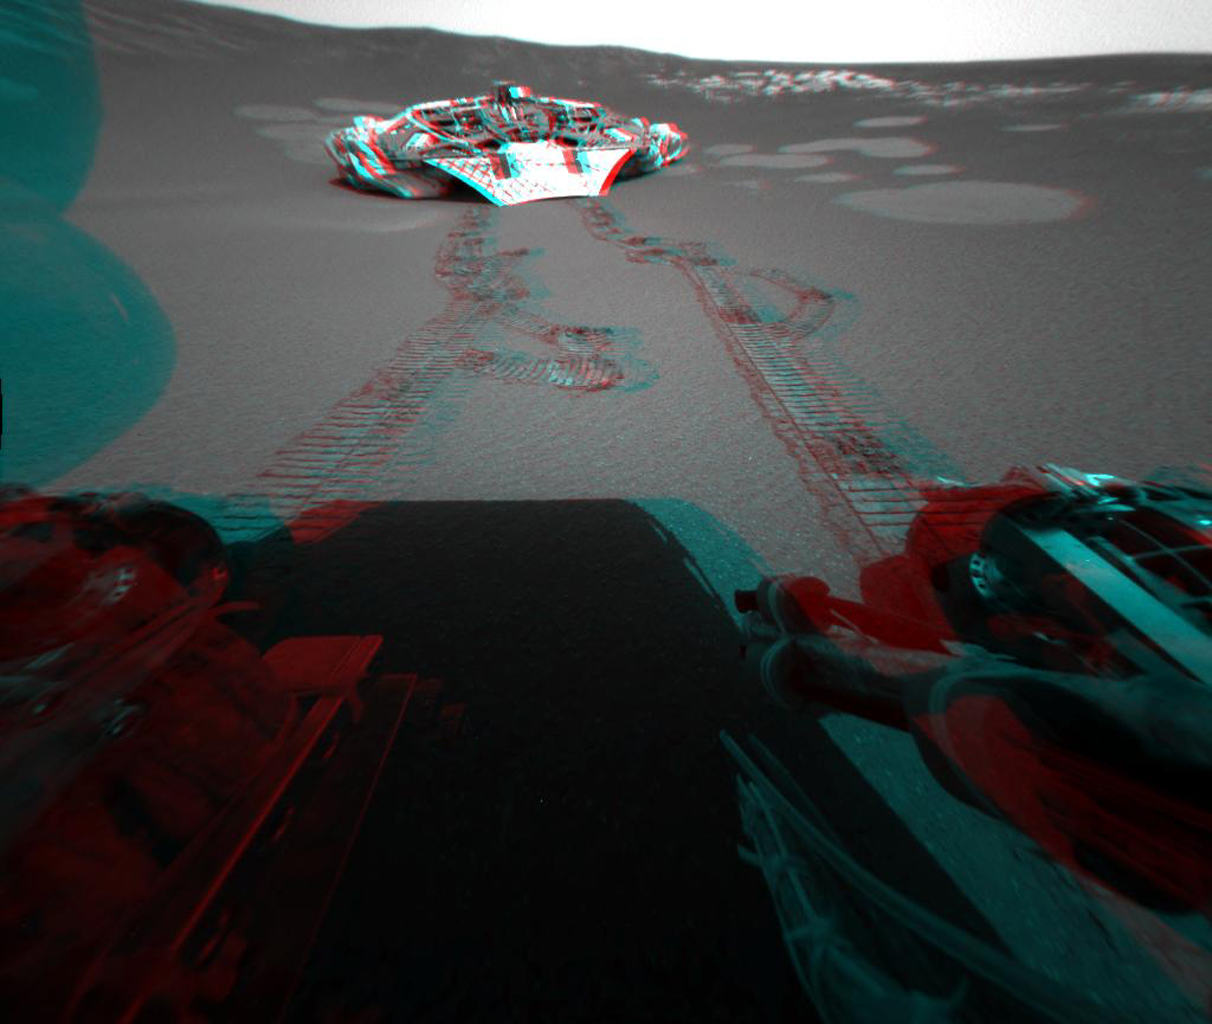 This 3-D view from behind NASA's Mars Exploration Rover Opportunity shows the path the rover has traveled since rolling 1 meter (3 feet) away from its empty lander on the seventh martian day, or sol, of its mission. 3D glasses are necessary.